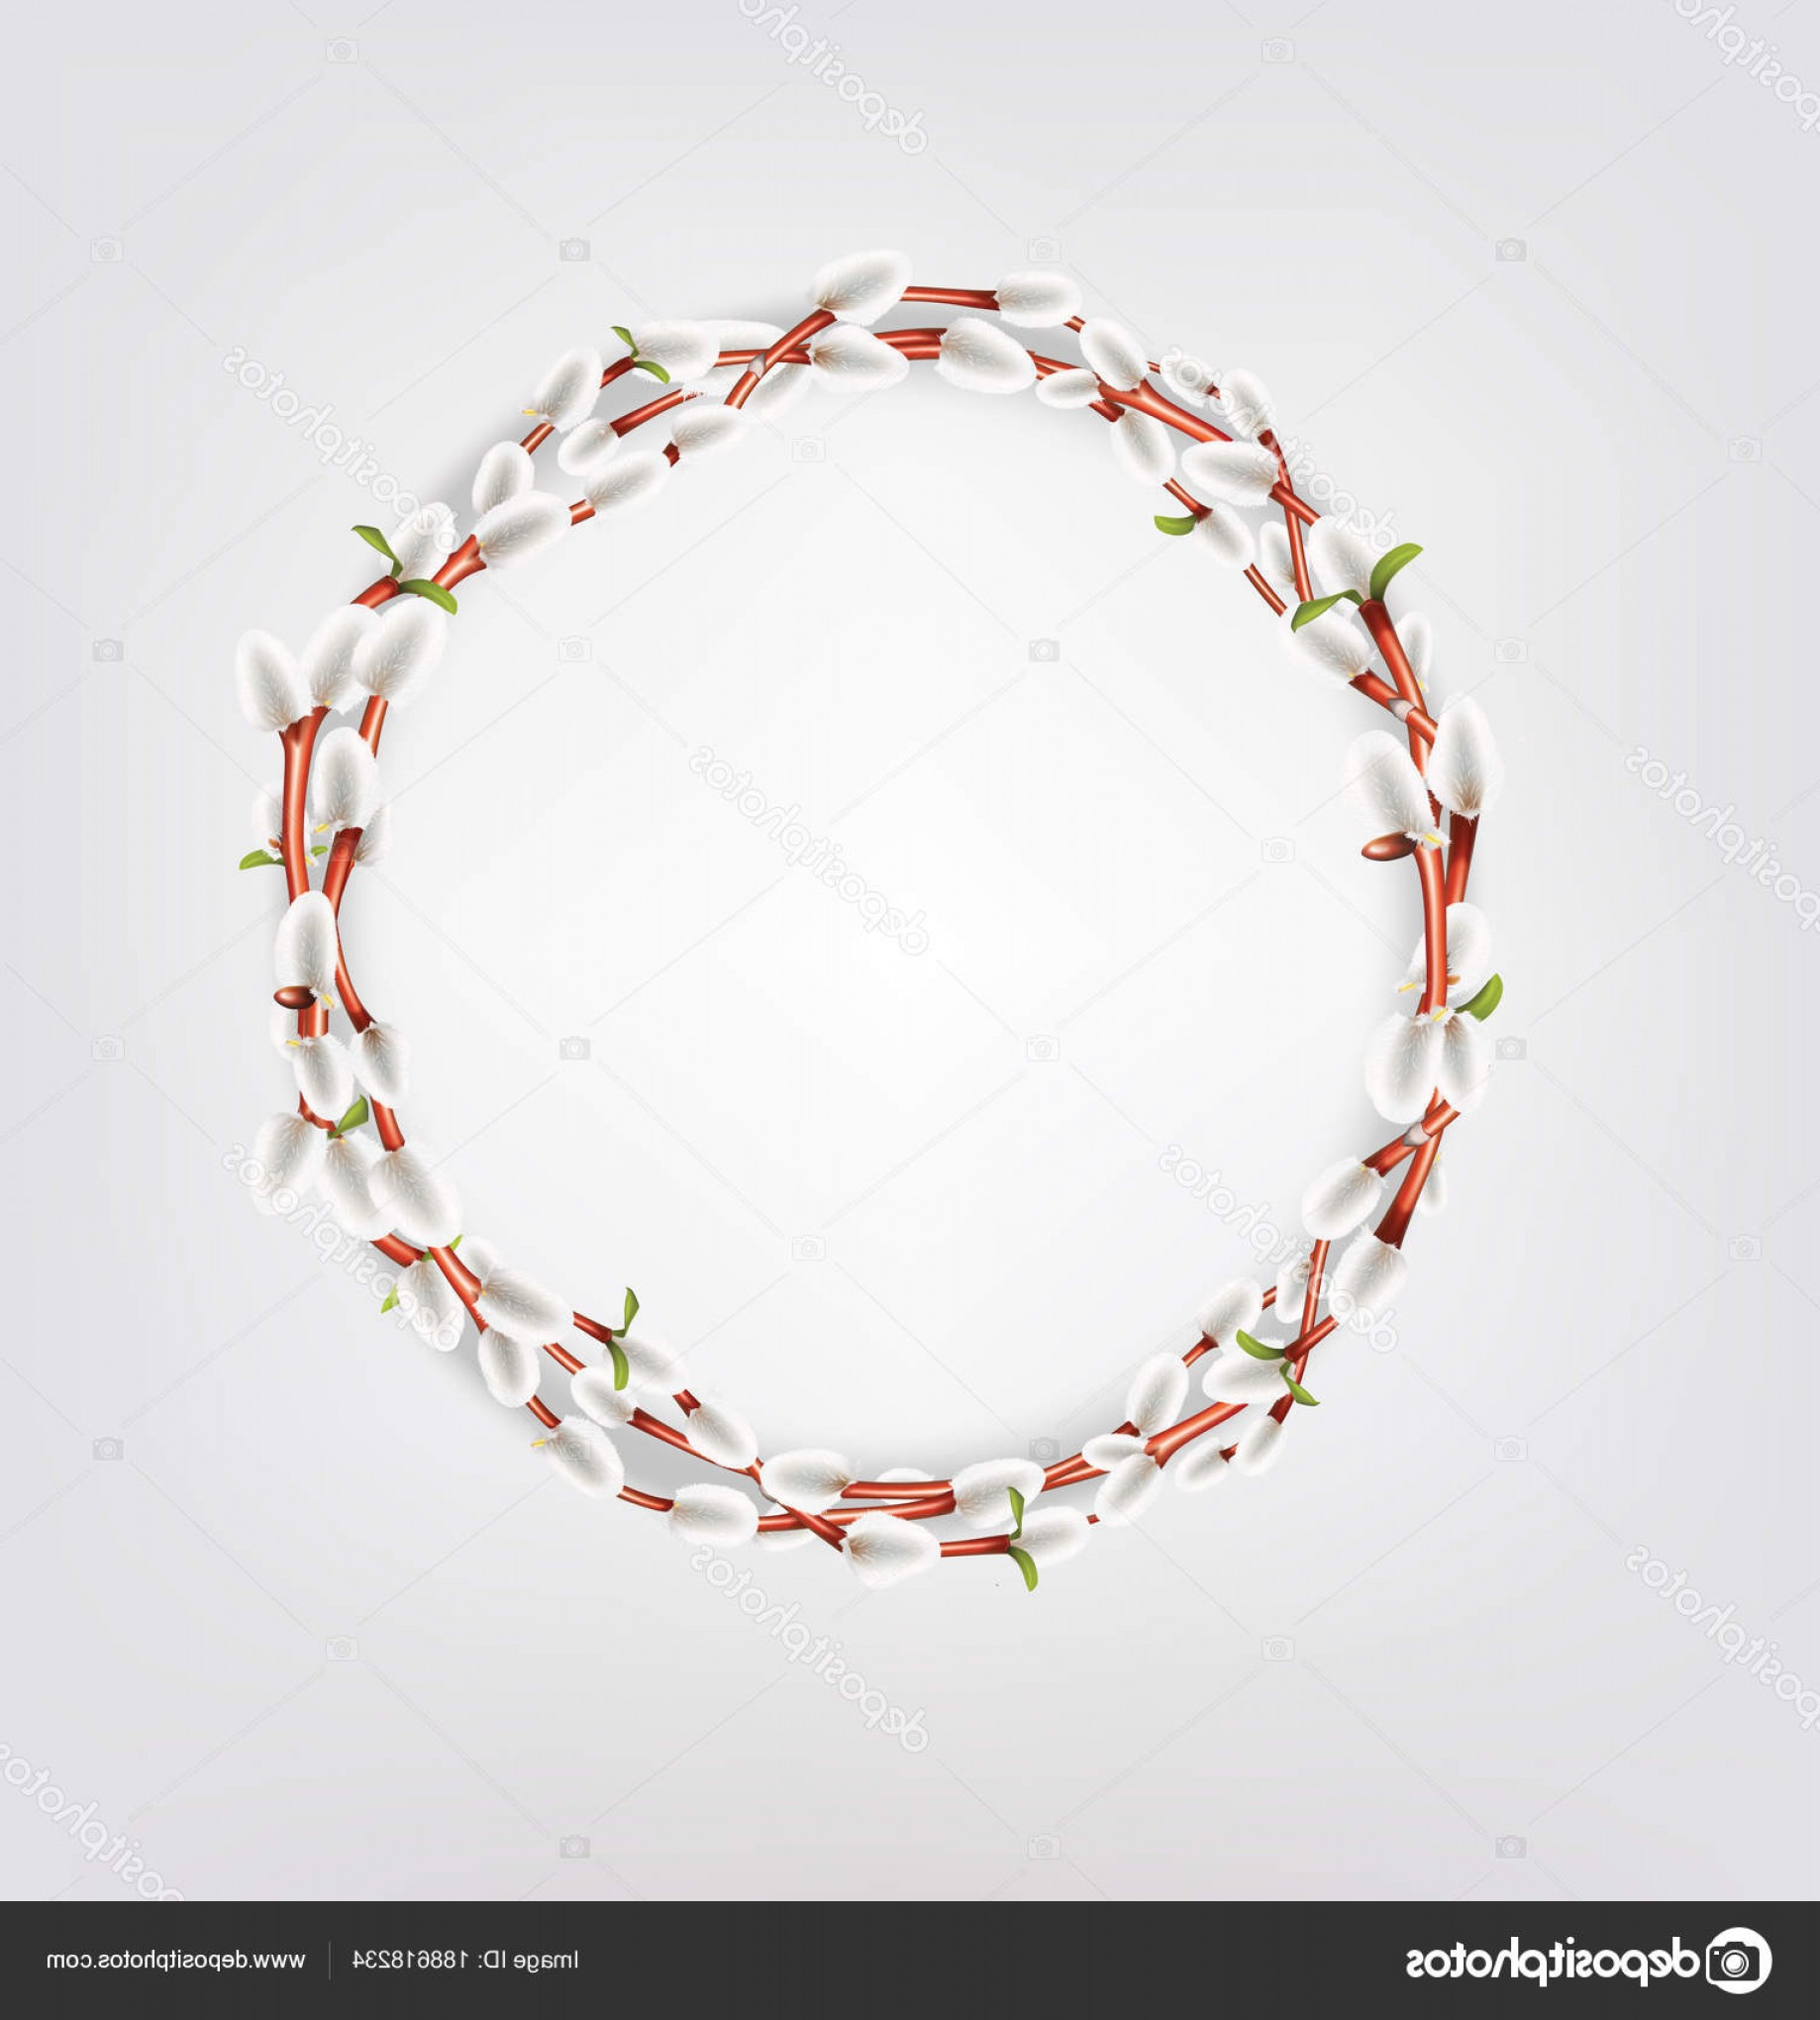 Vector Natural Willow: Stock Illustration Wreath Made Of Willow Twigs